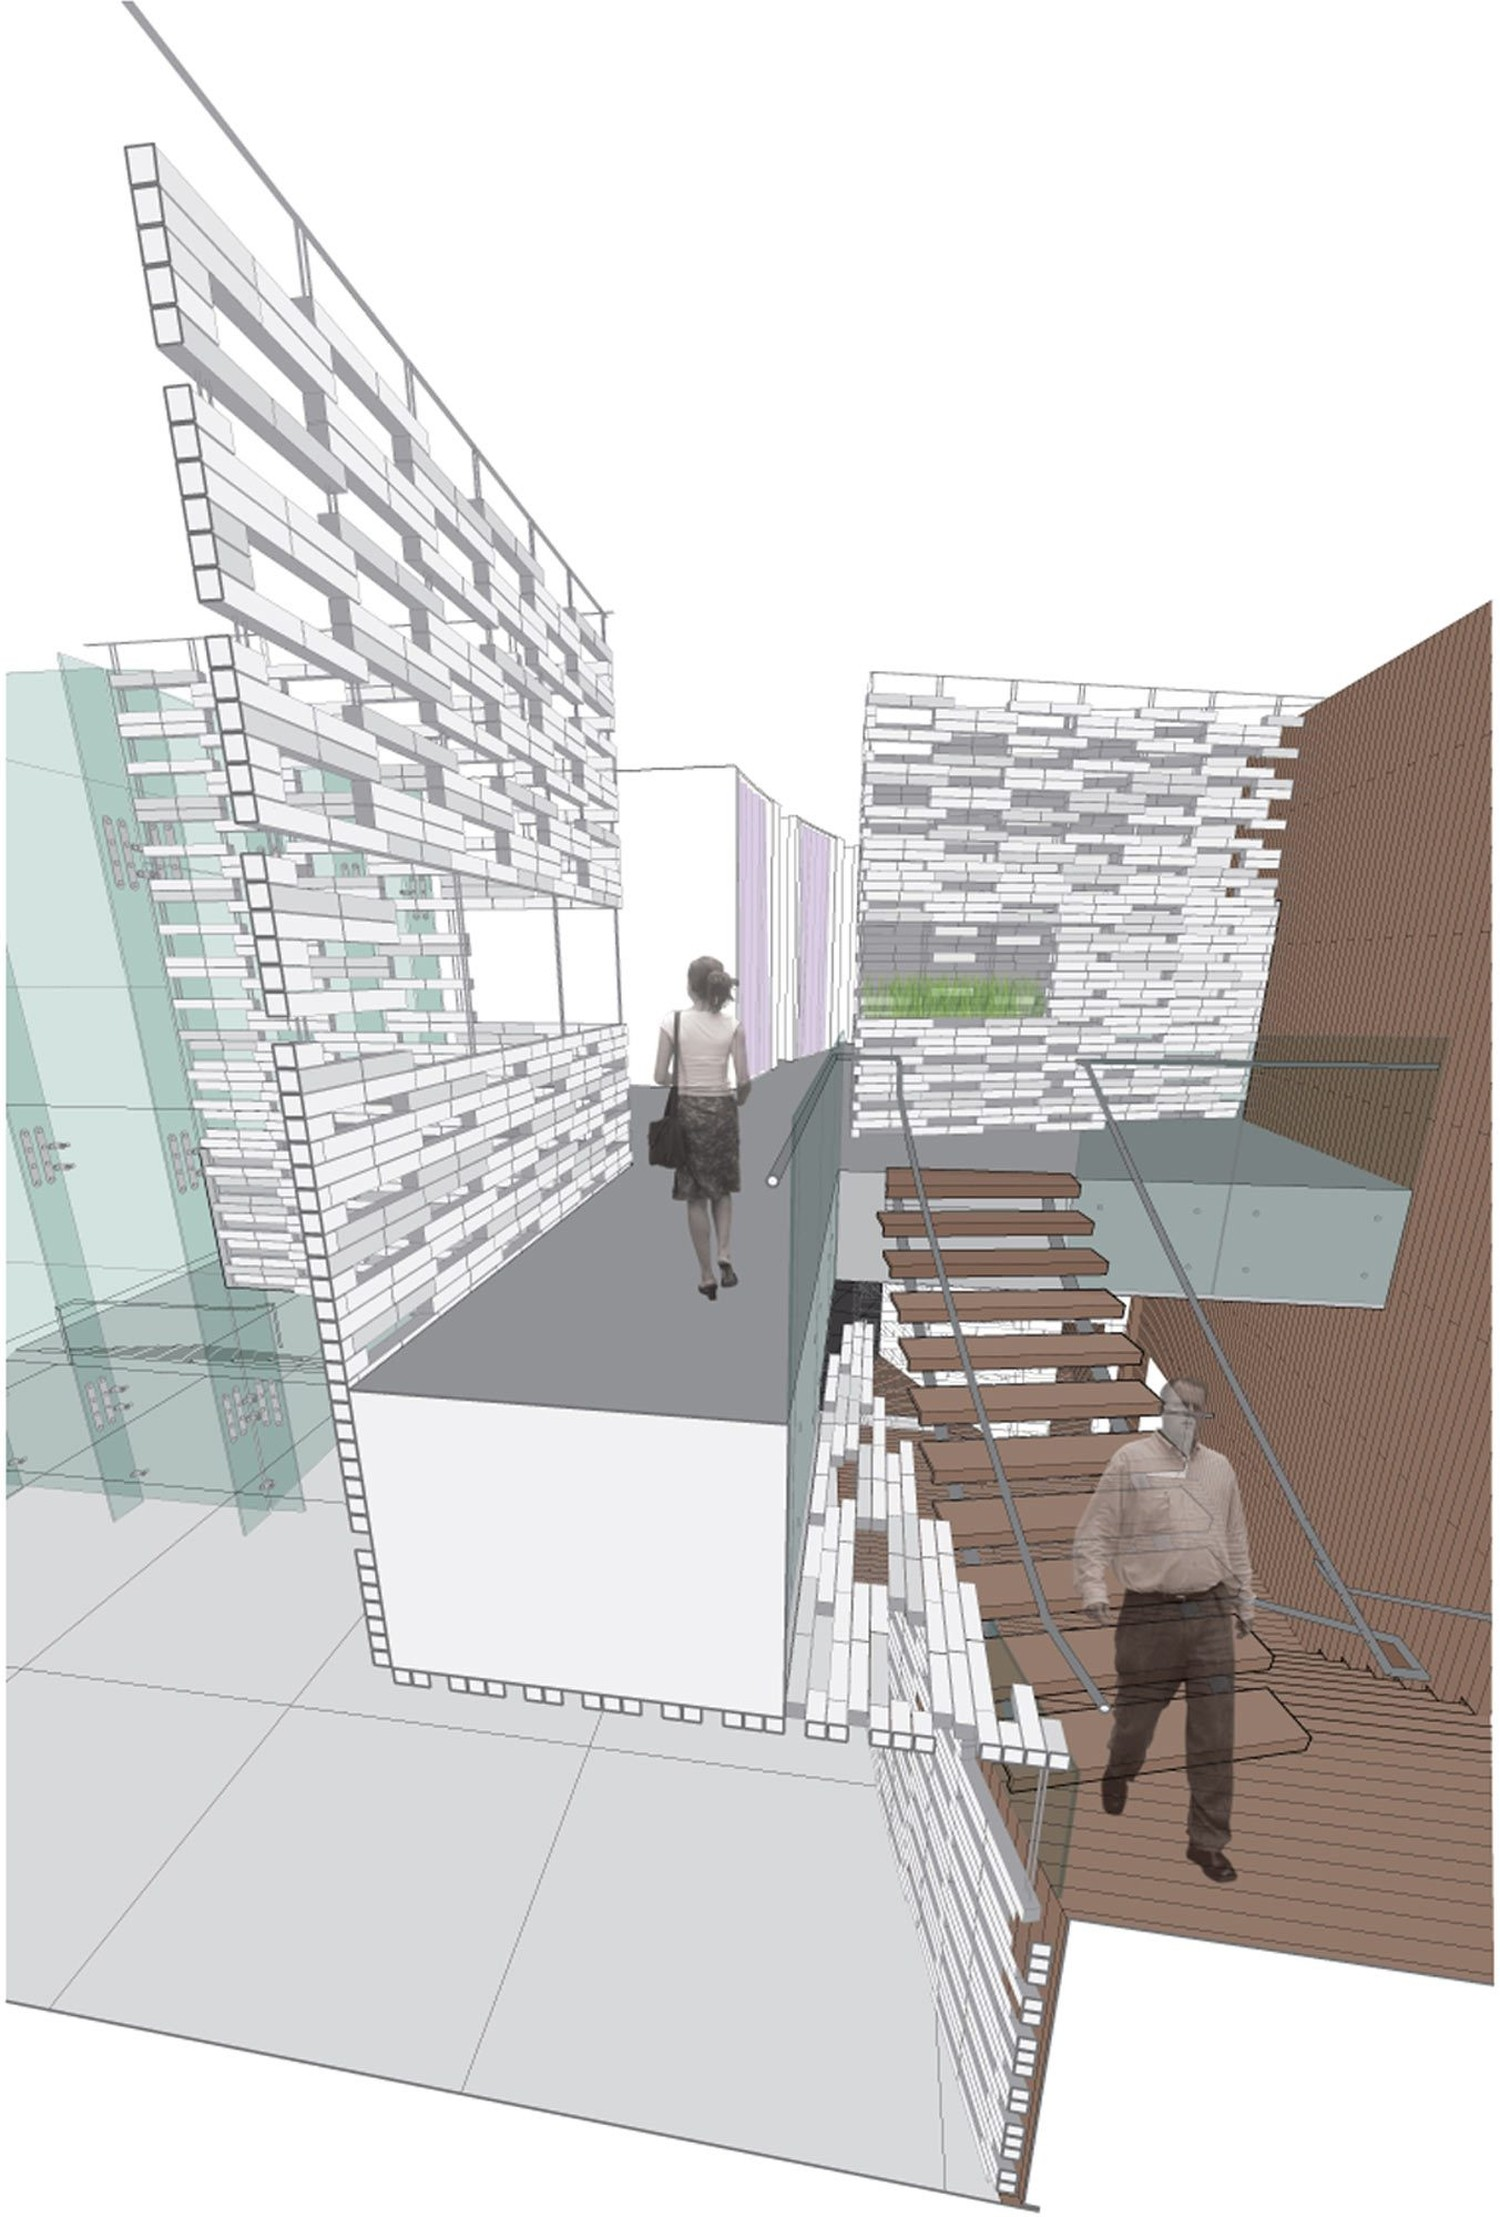 Stair Section Perspective